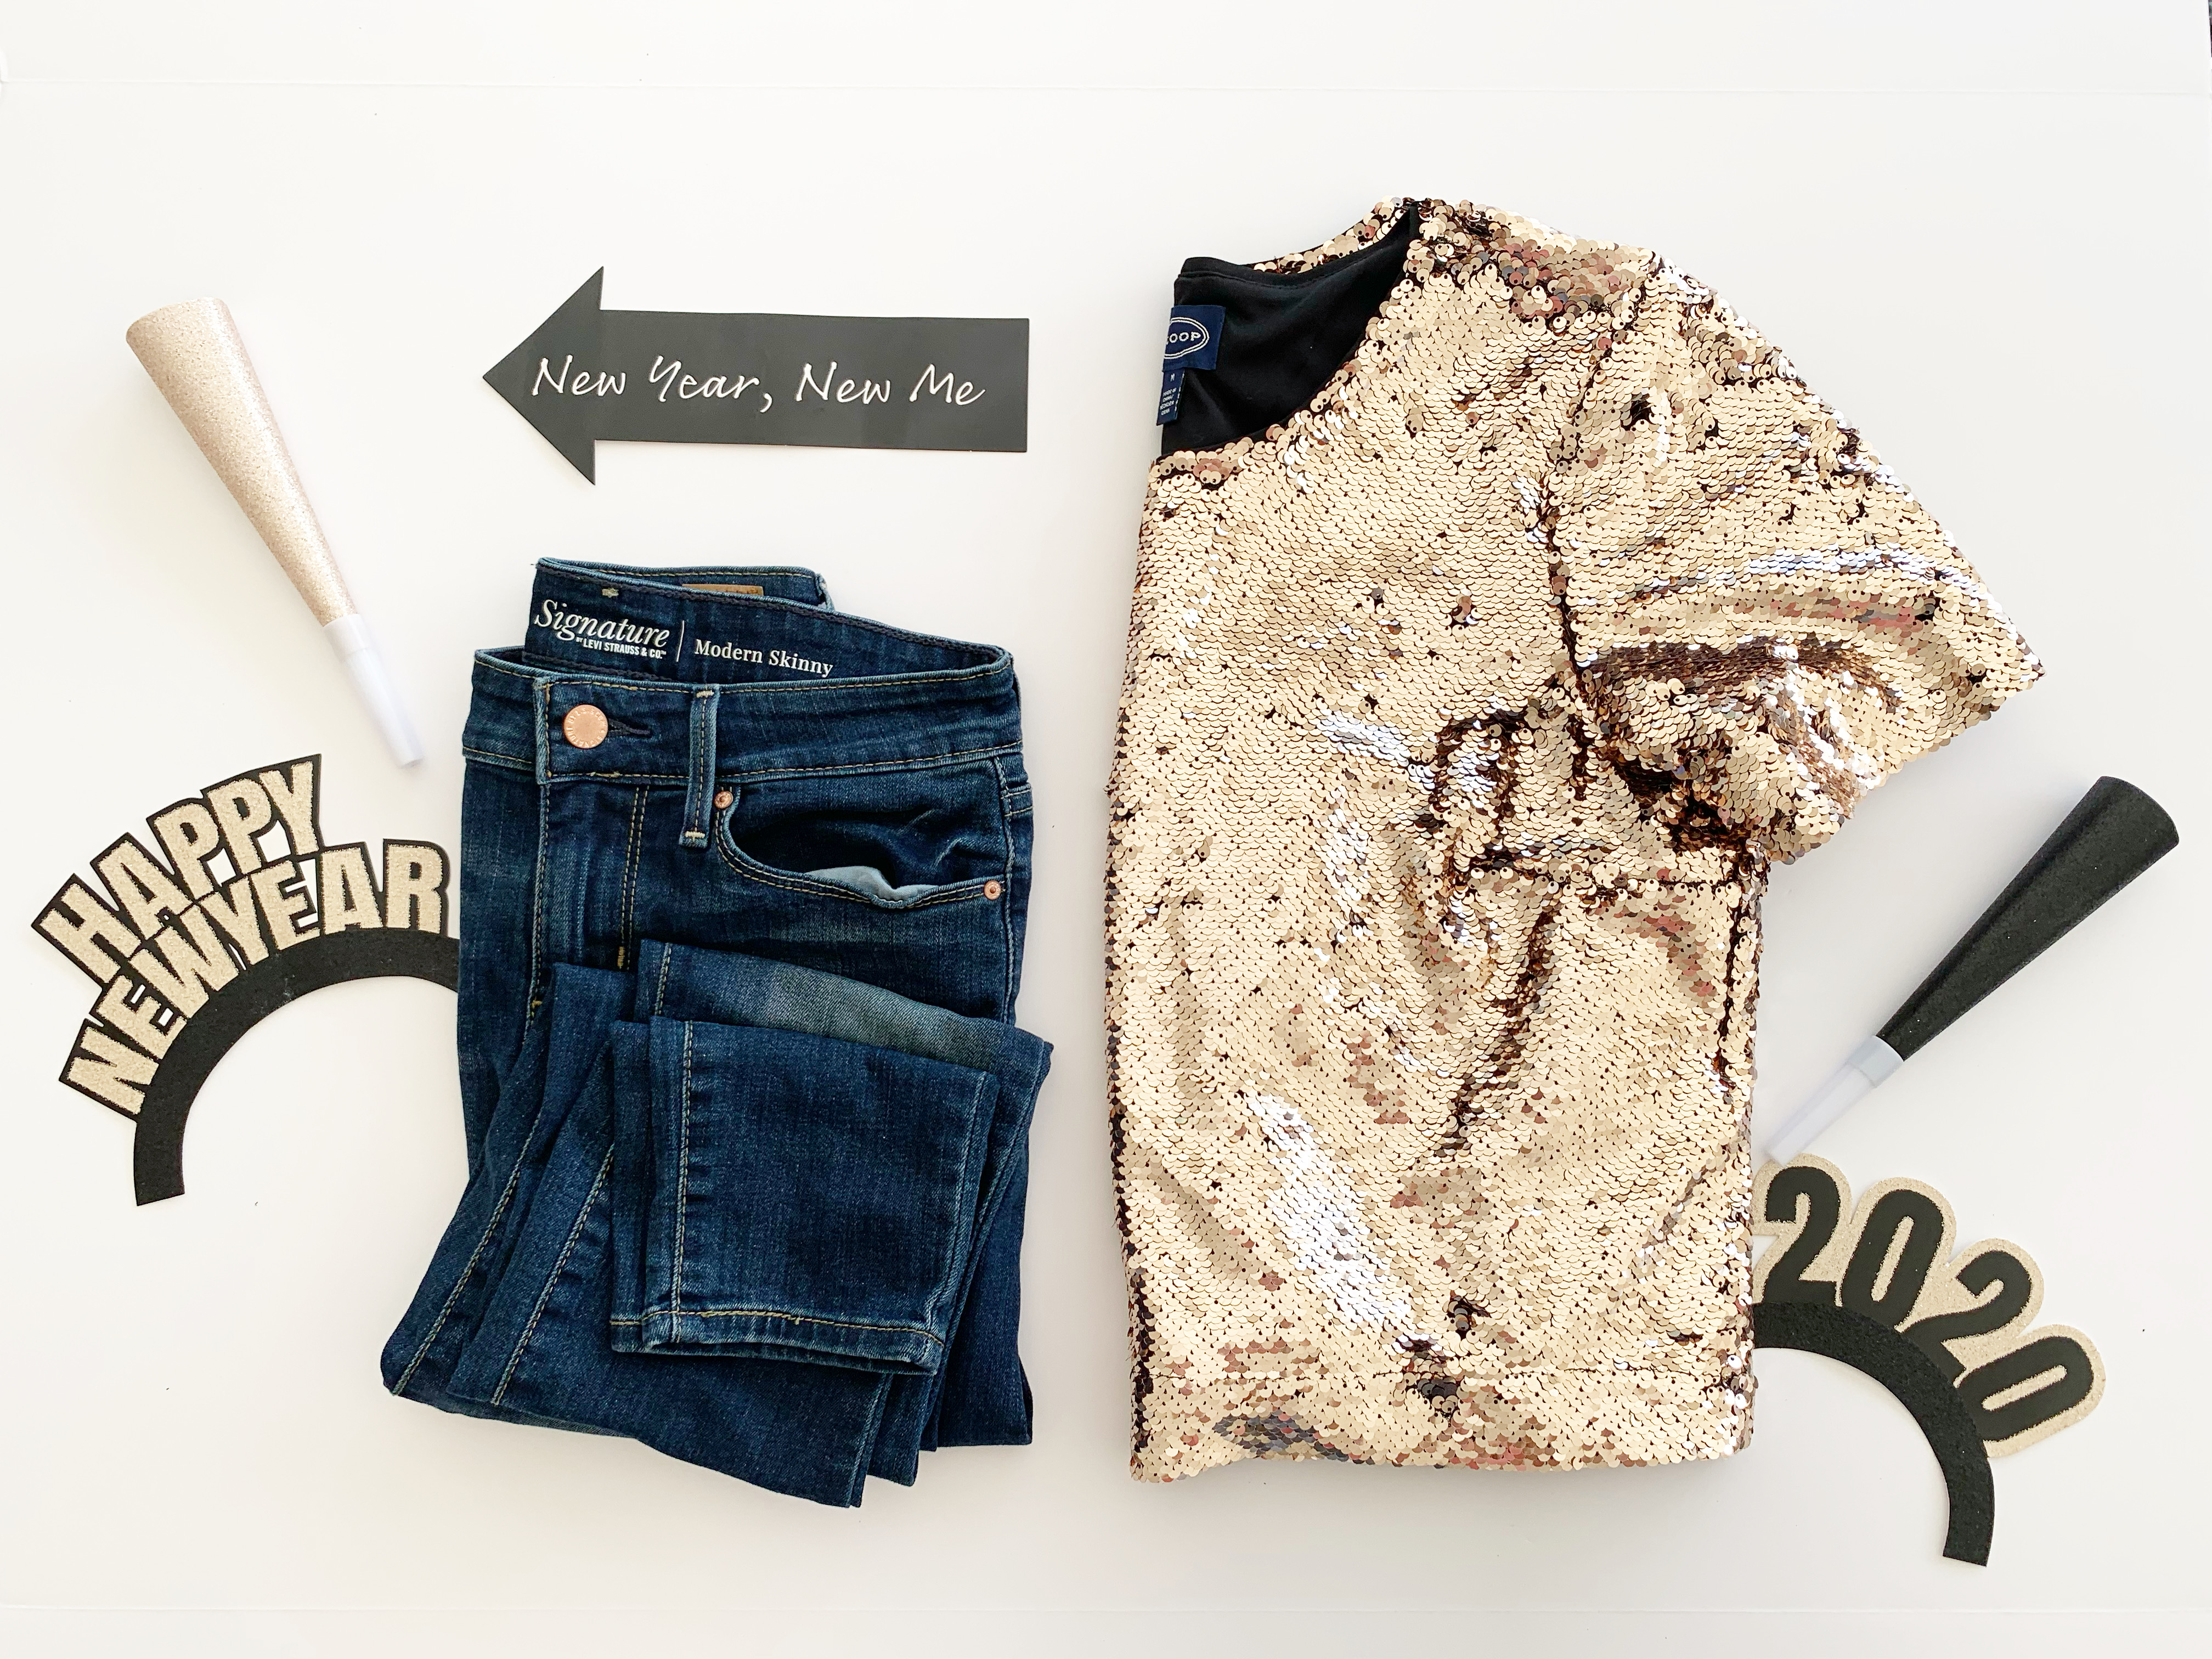 flat lay style photo with sequin top and jeans with NYE decor